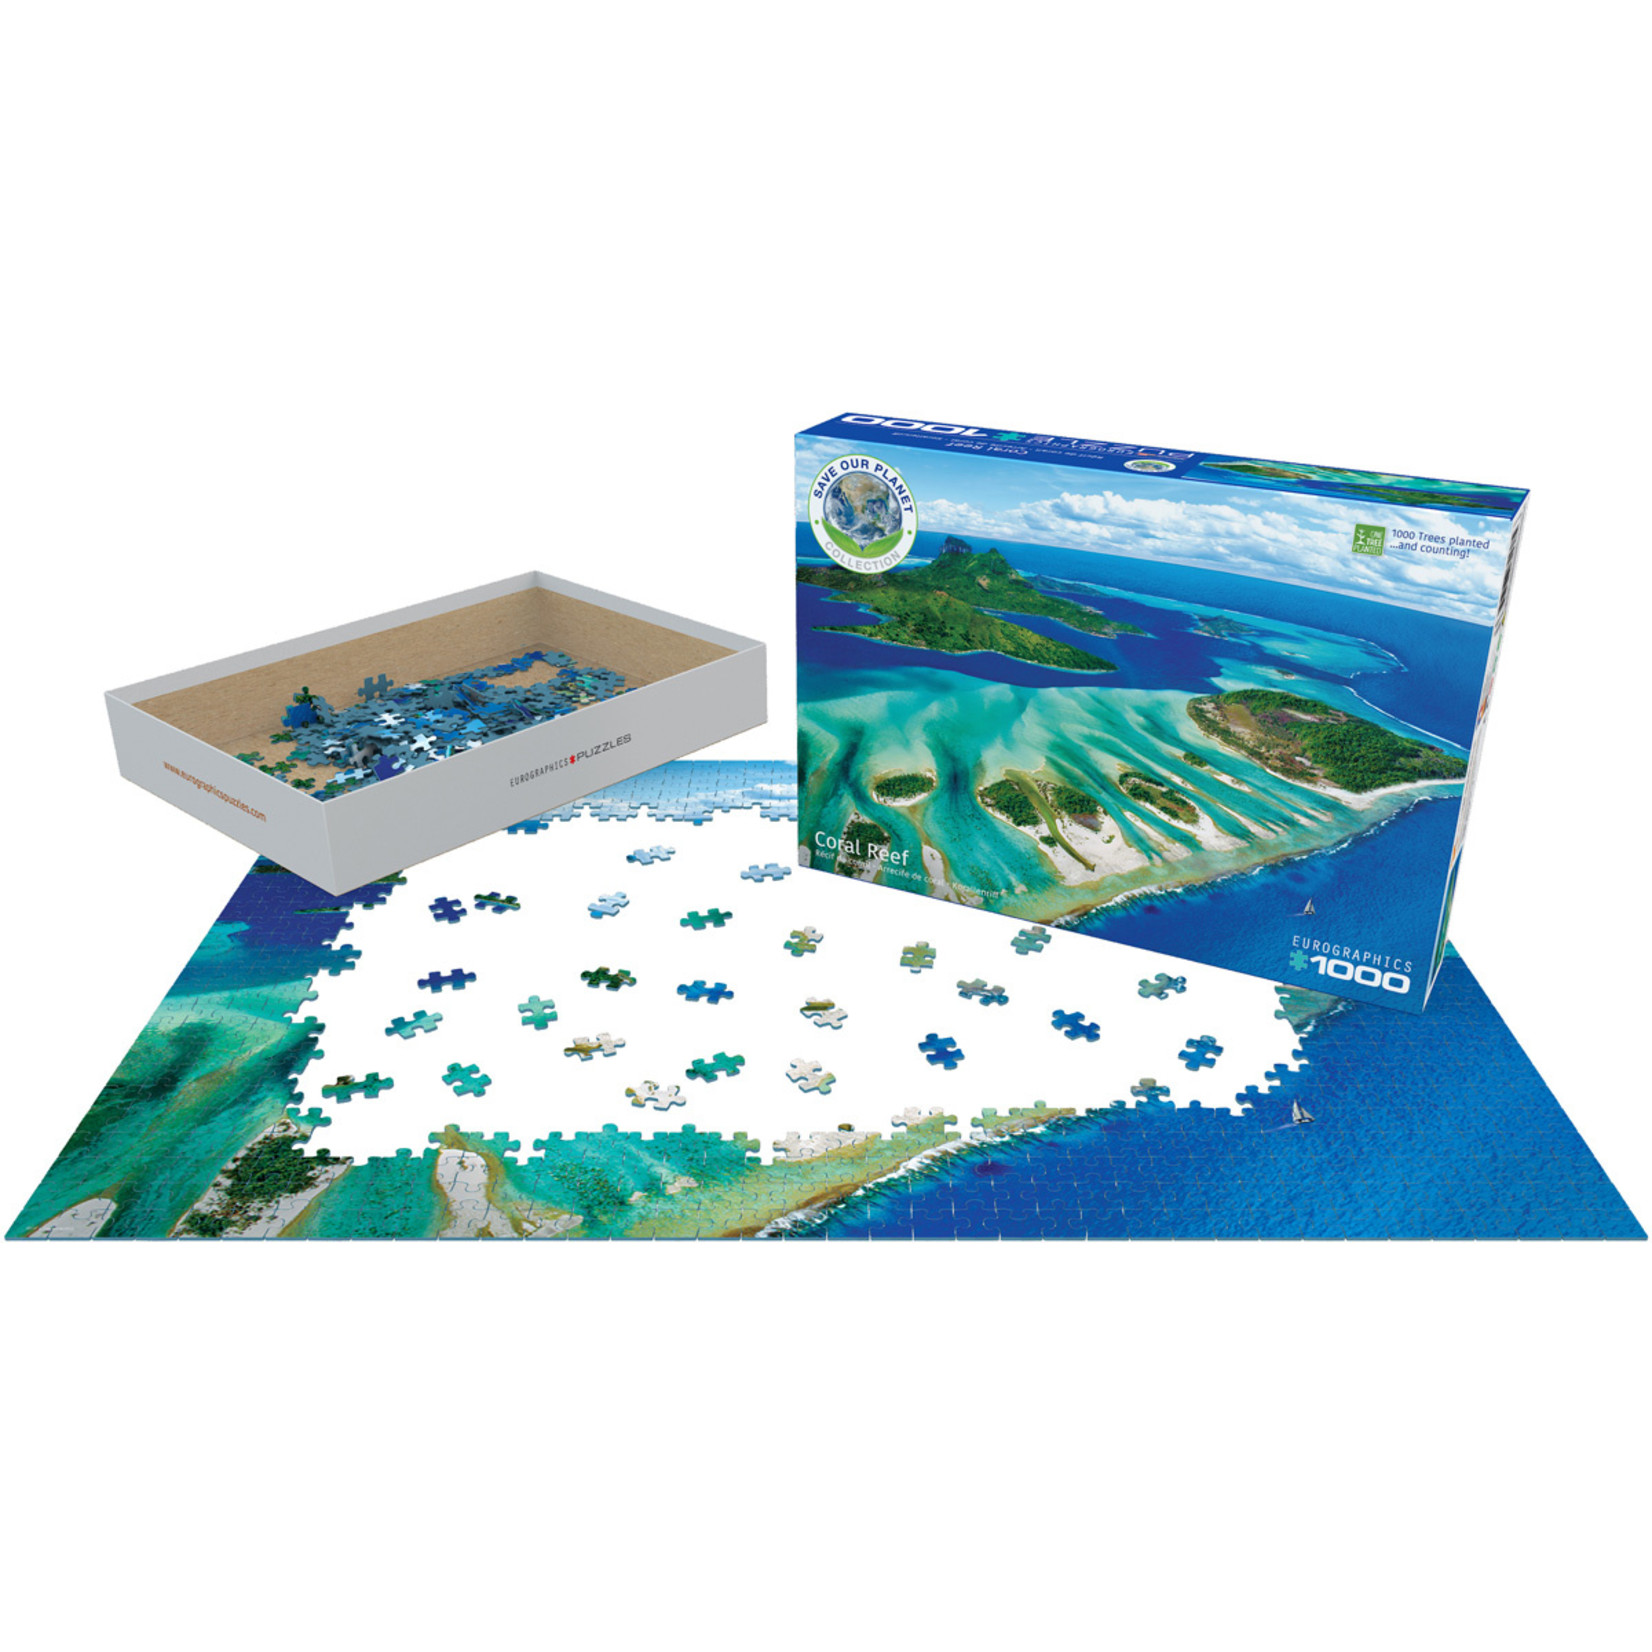 EuroGraphics Puzzles Coral Reef 1000pc